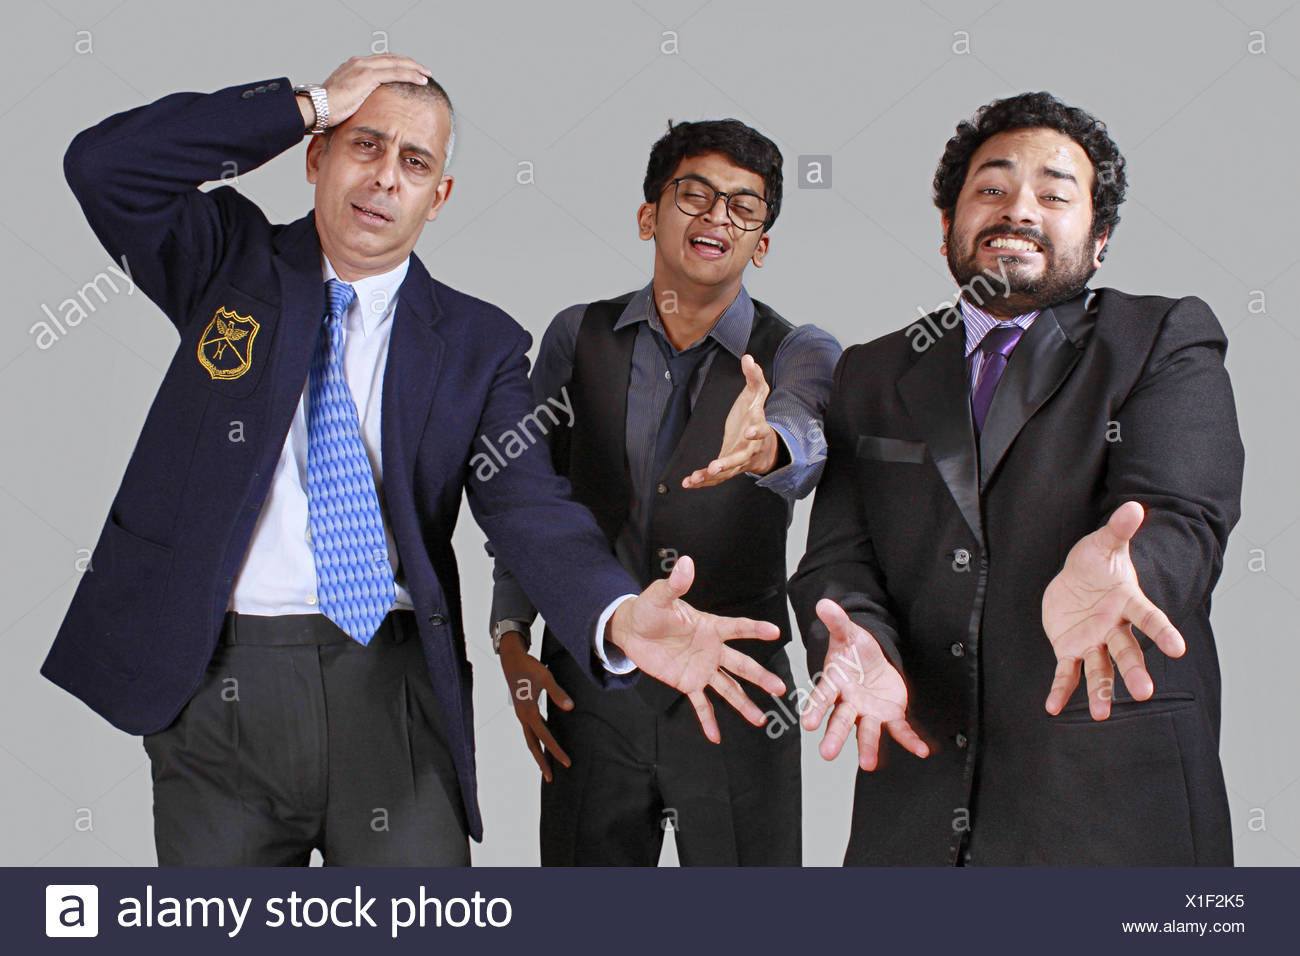 Three business men expressing sorrow over a disaster - Stock Image